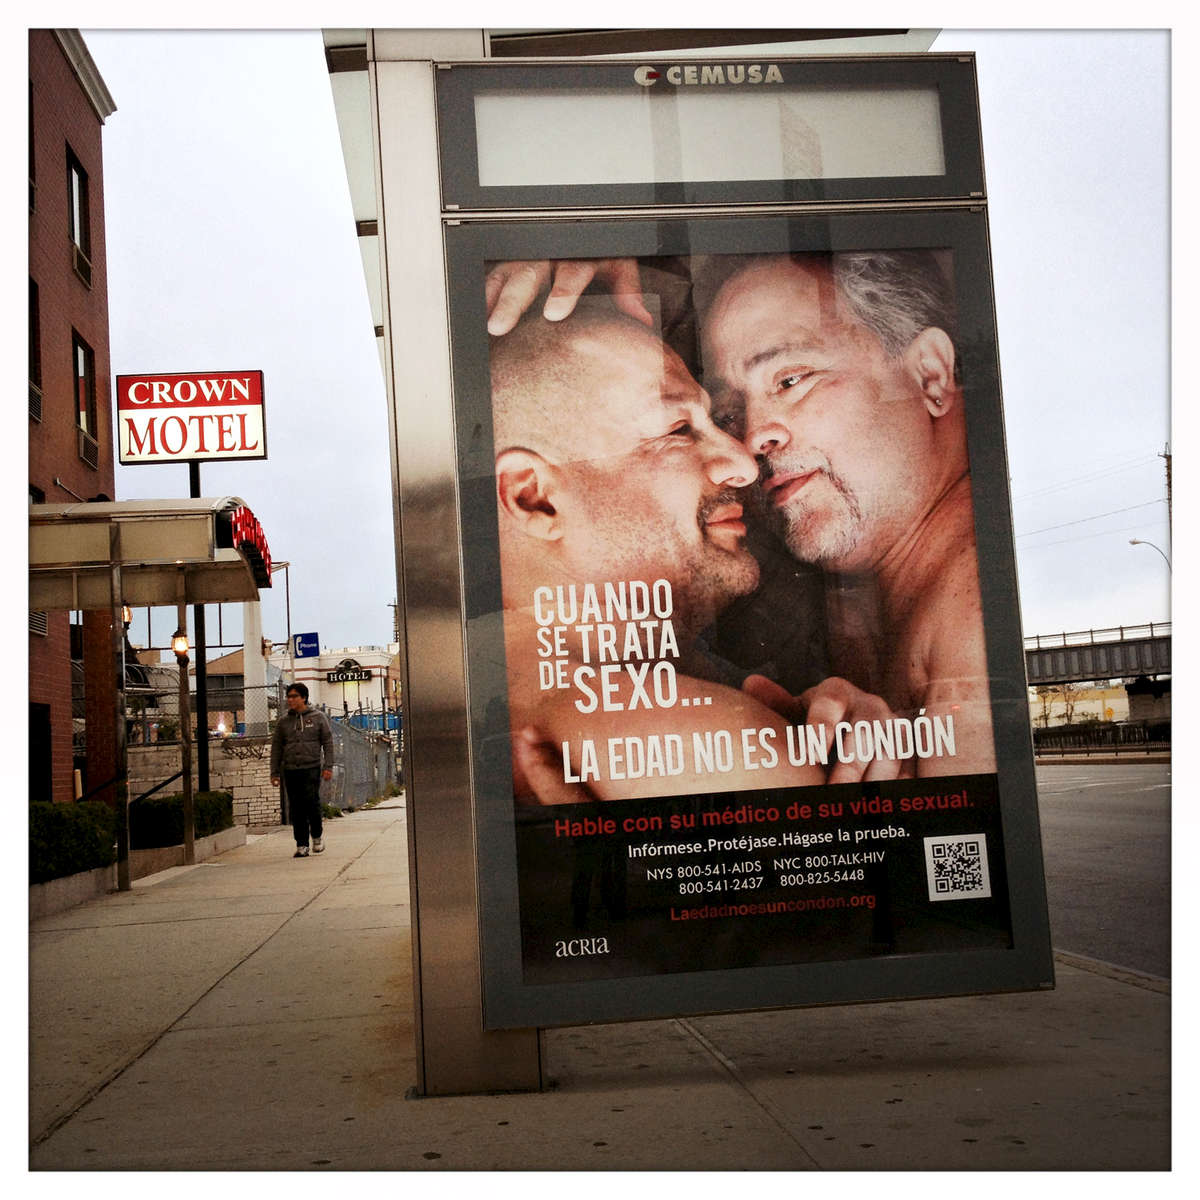 Age Is Not  A Condom - NYC bus shelter campaign 2014.Elmhust, Queens.www.ageisnotacondom.org and www.grayingofaids.org